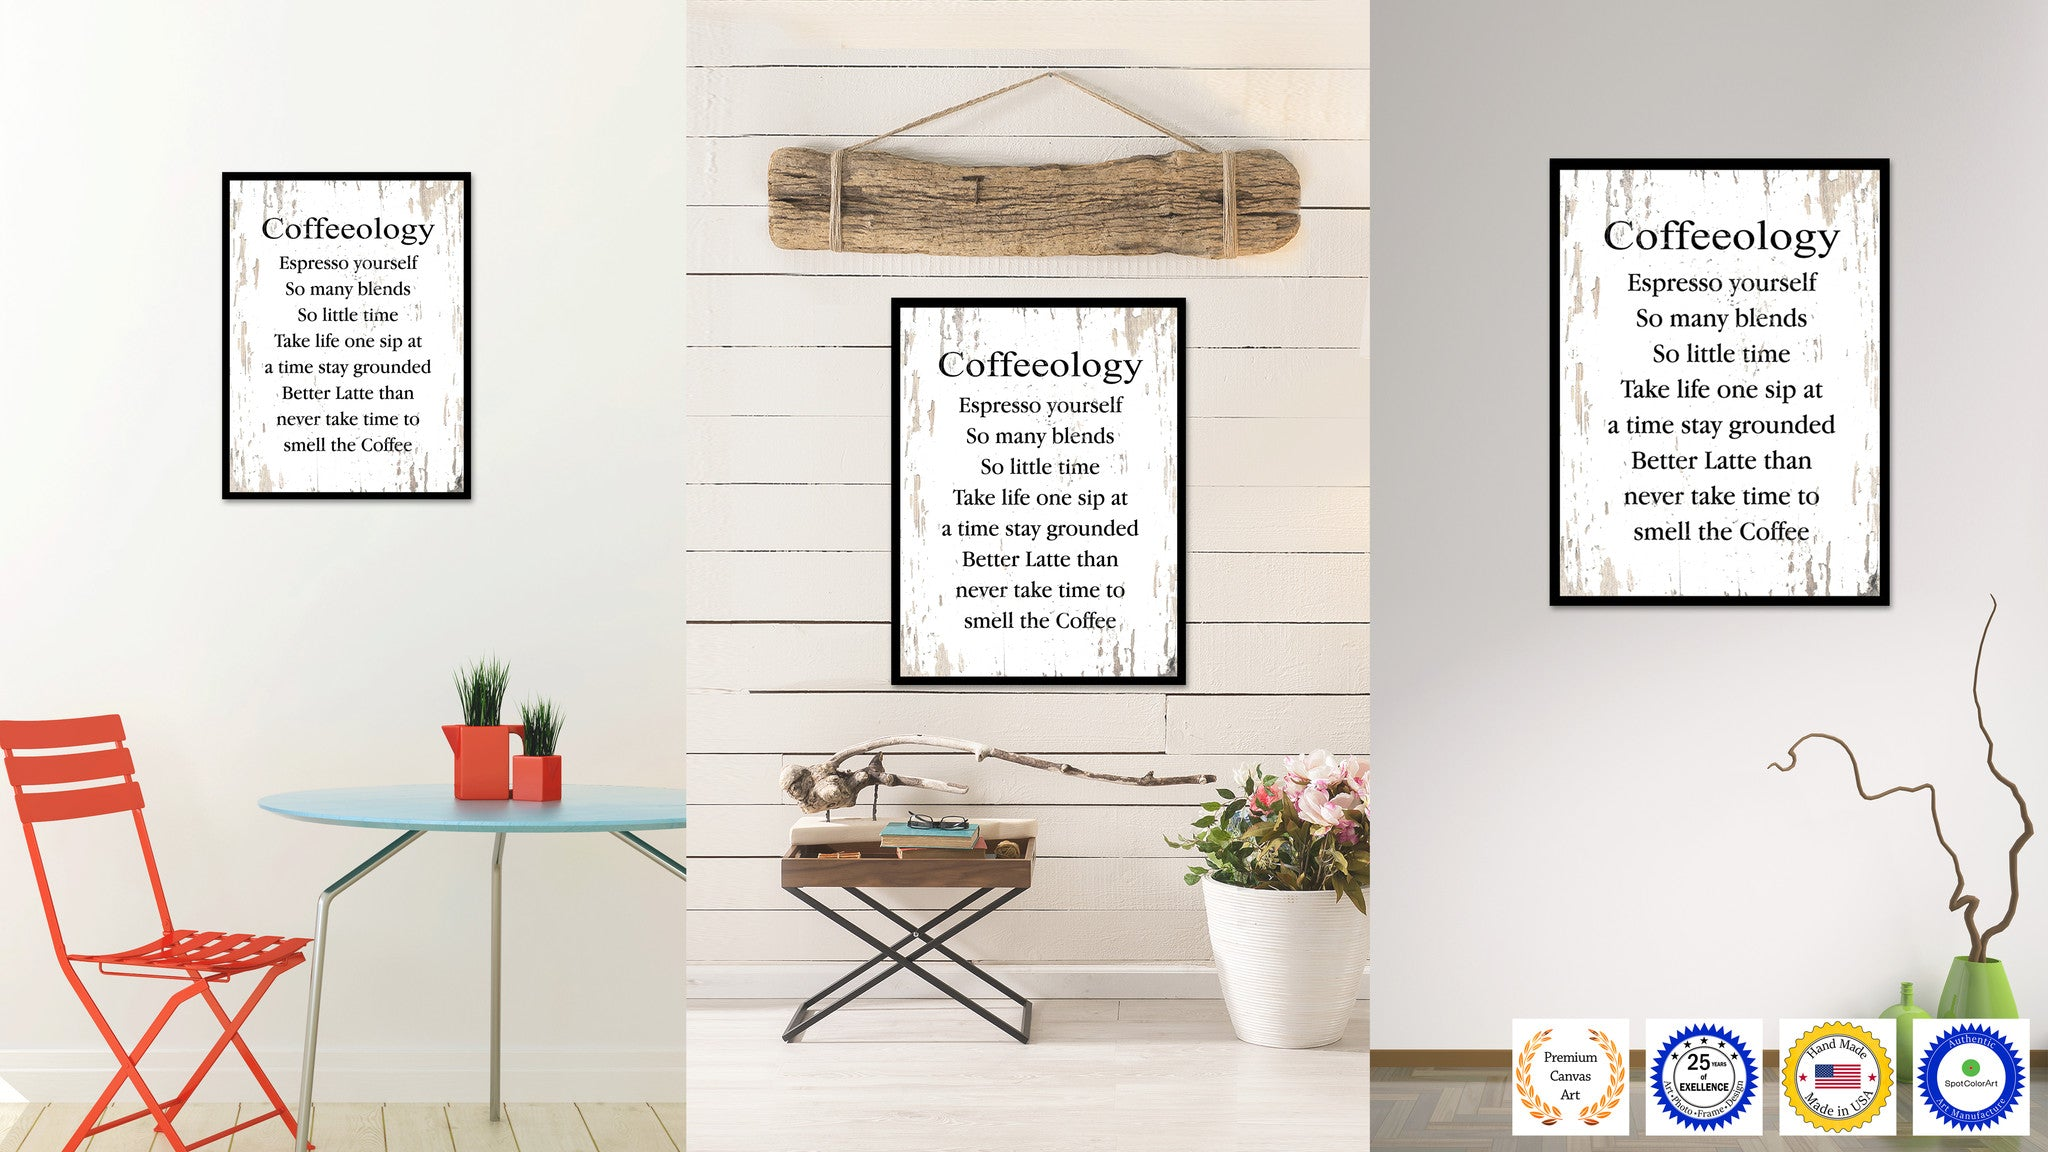 Coffeeology Espresso Yourself So Many Blends So Little Time Take Life One Sip At A Time Stay Grounded Better Latte Than Never Take Time To Smell The Coffee White Canvas Print